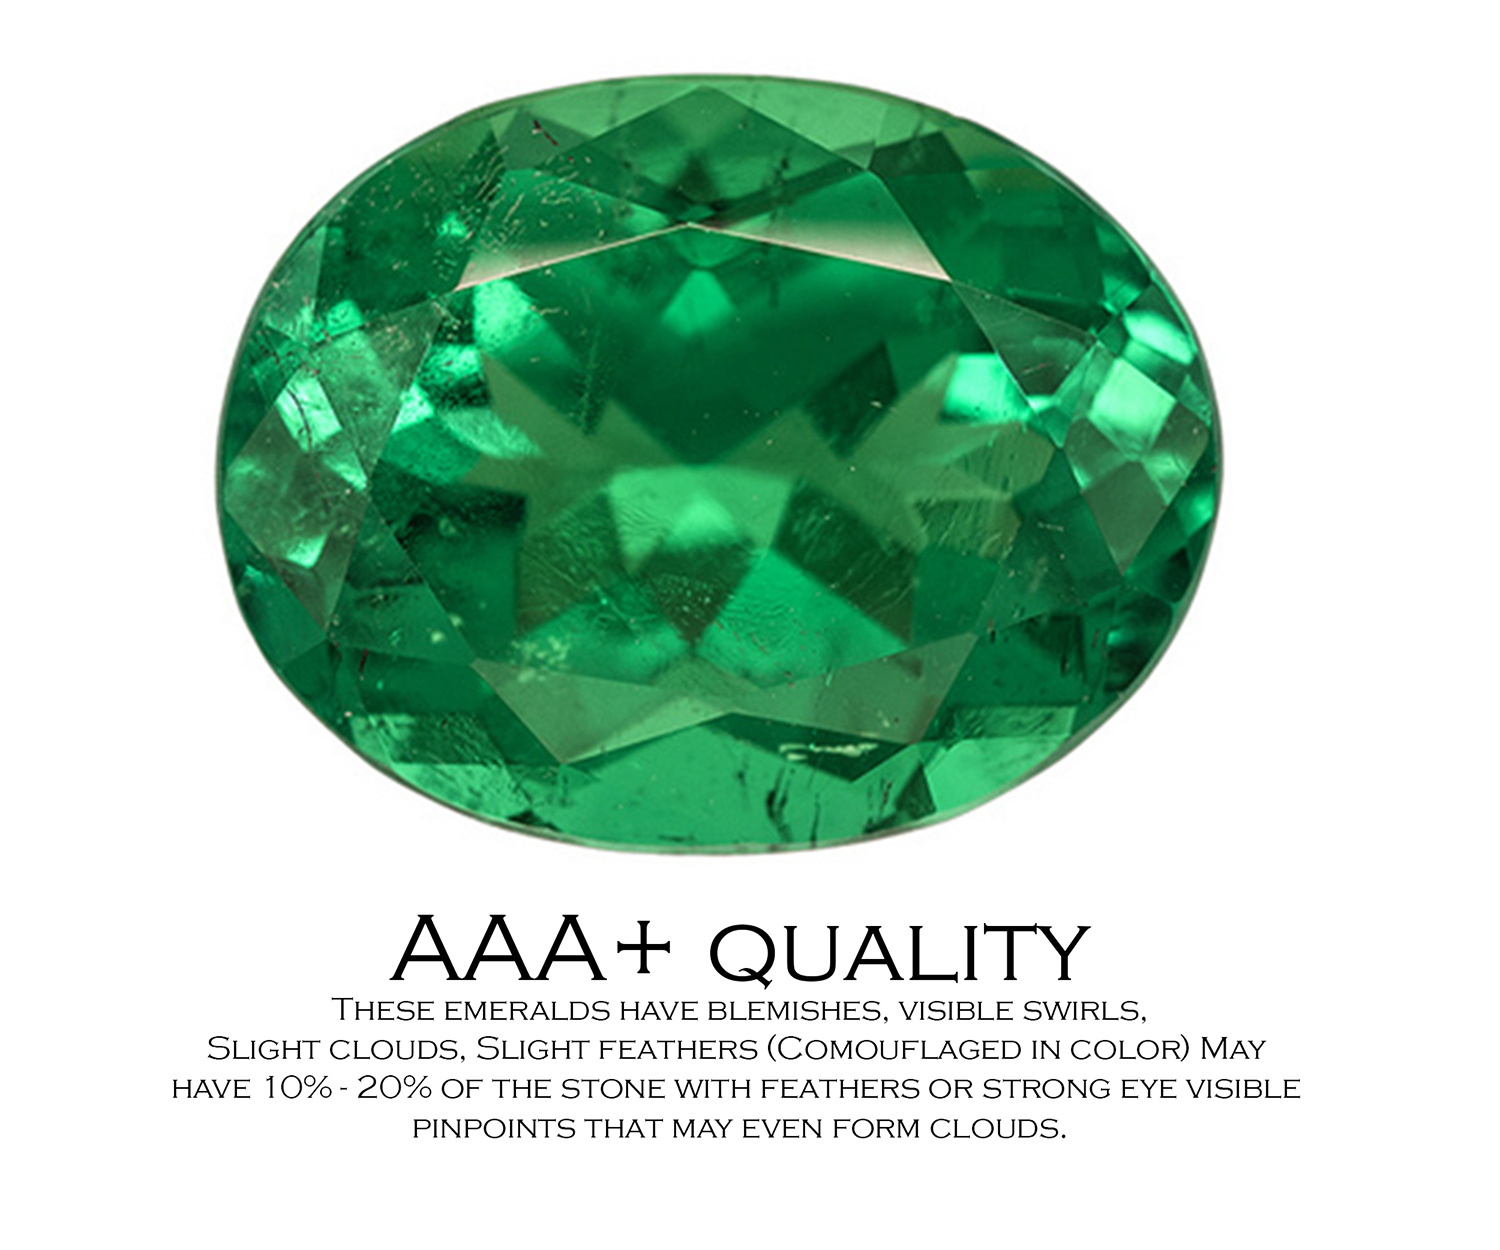 Emerald quality chart - World's first of a kind